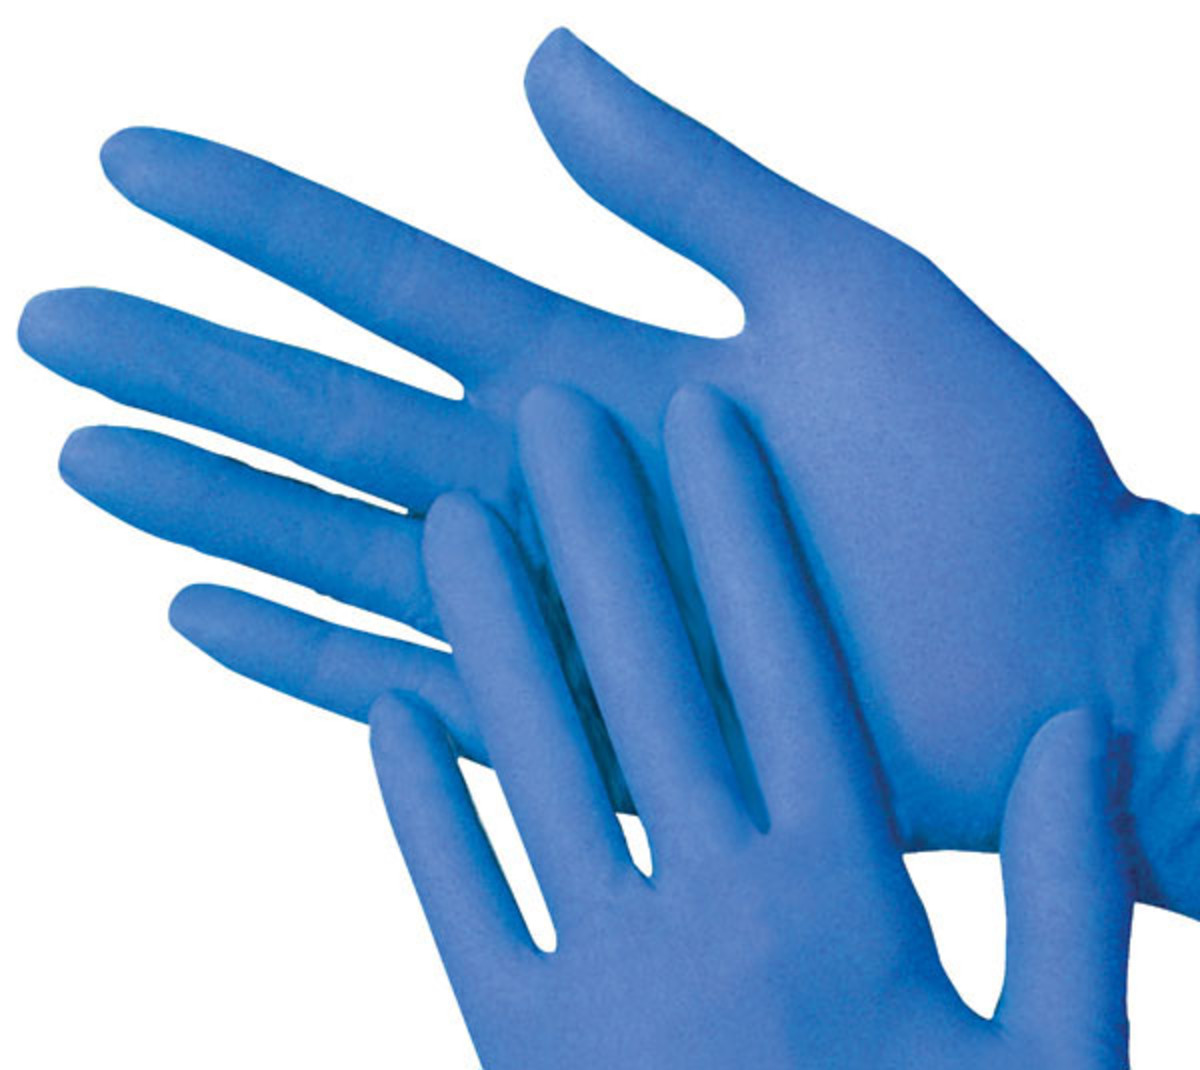 An Allergy Guide for Health Workers: Non-Latex Nitrile Gloves